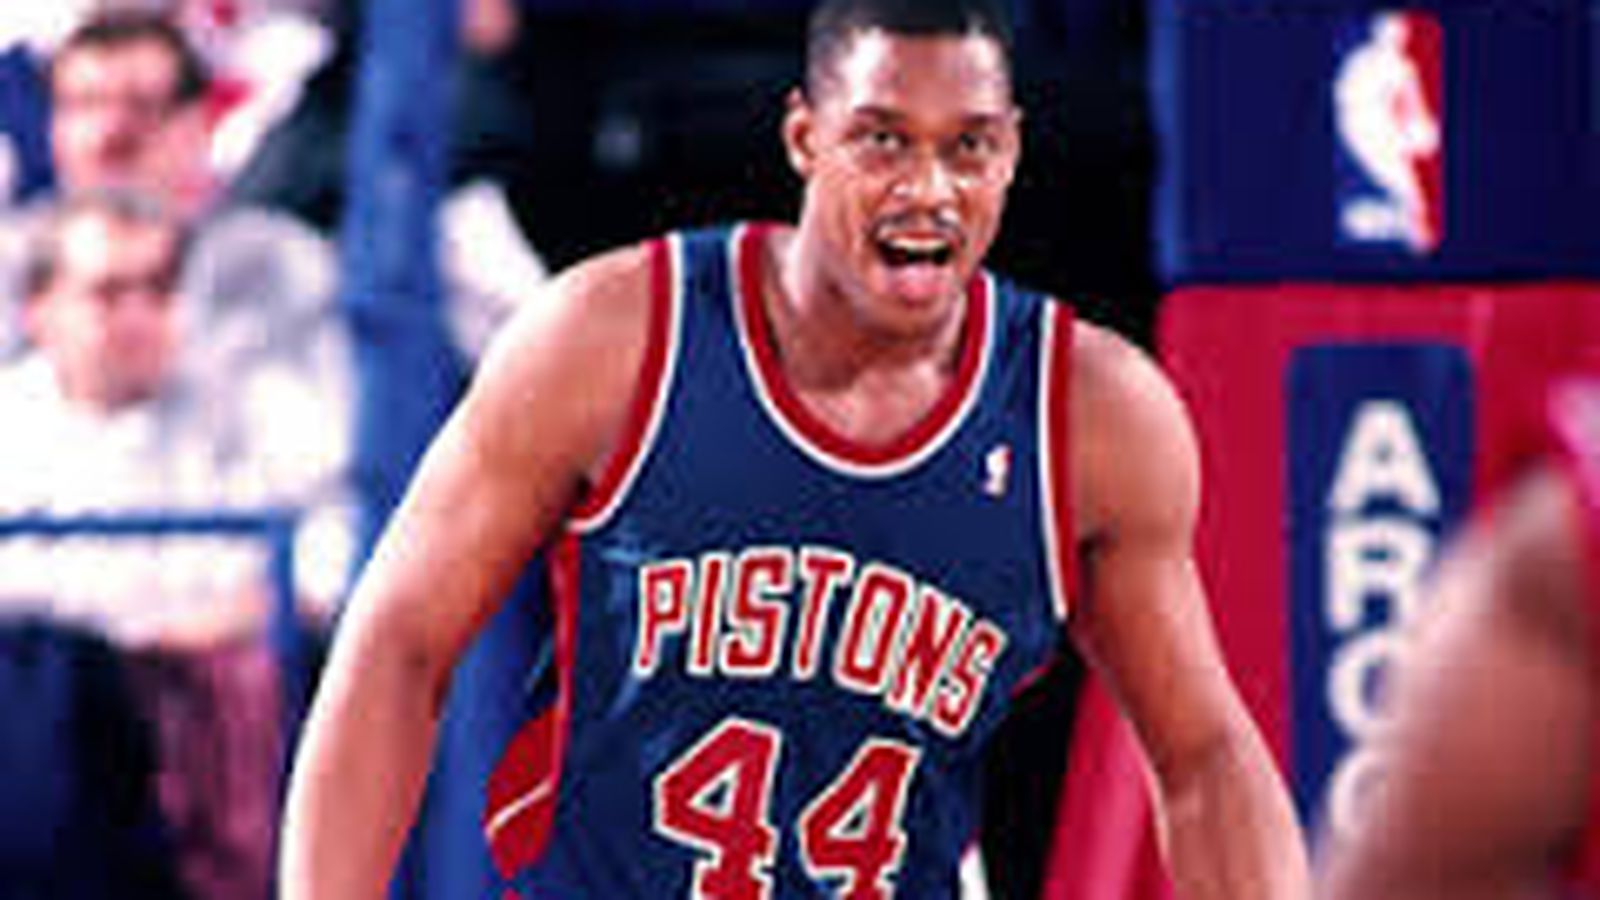 Detroit Piston's Rick Mahorn on MMA: I'm a 'Bad Boy' and we are always fans of fights - MMAmania.com